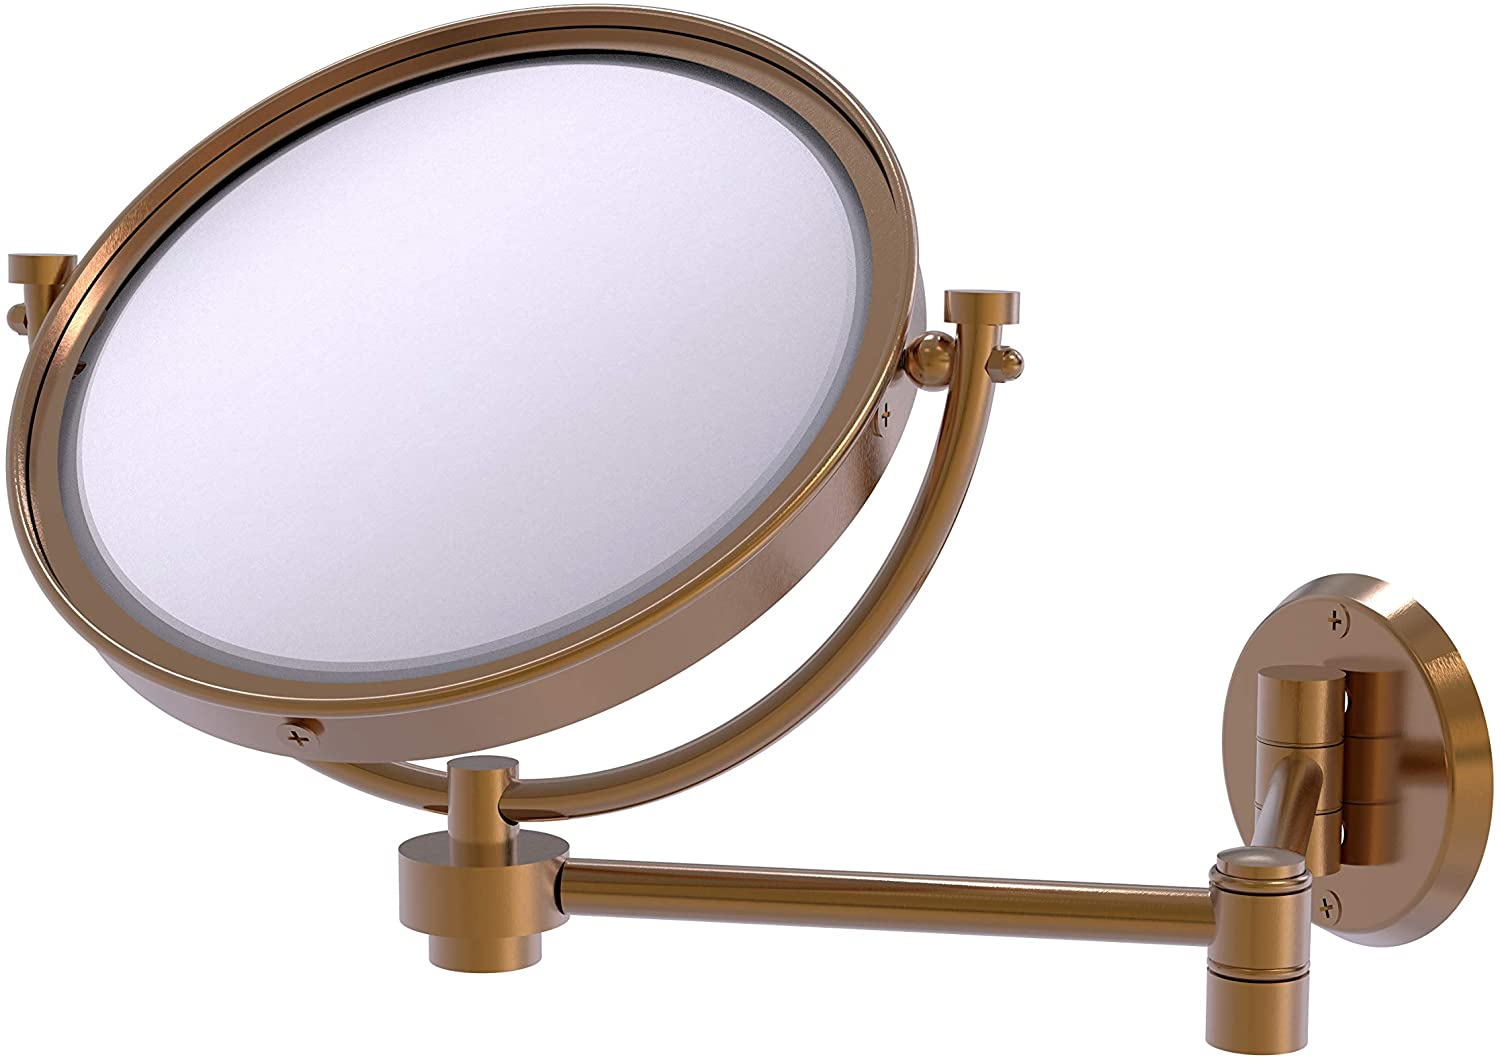 Allied Brass WM-6/3X 8 Inch Wall Mounted Extending 3X Magnification Make-Up Mirror, Brushed Bronze